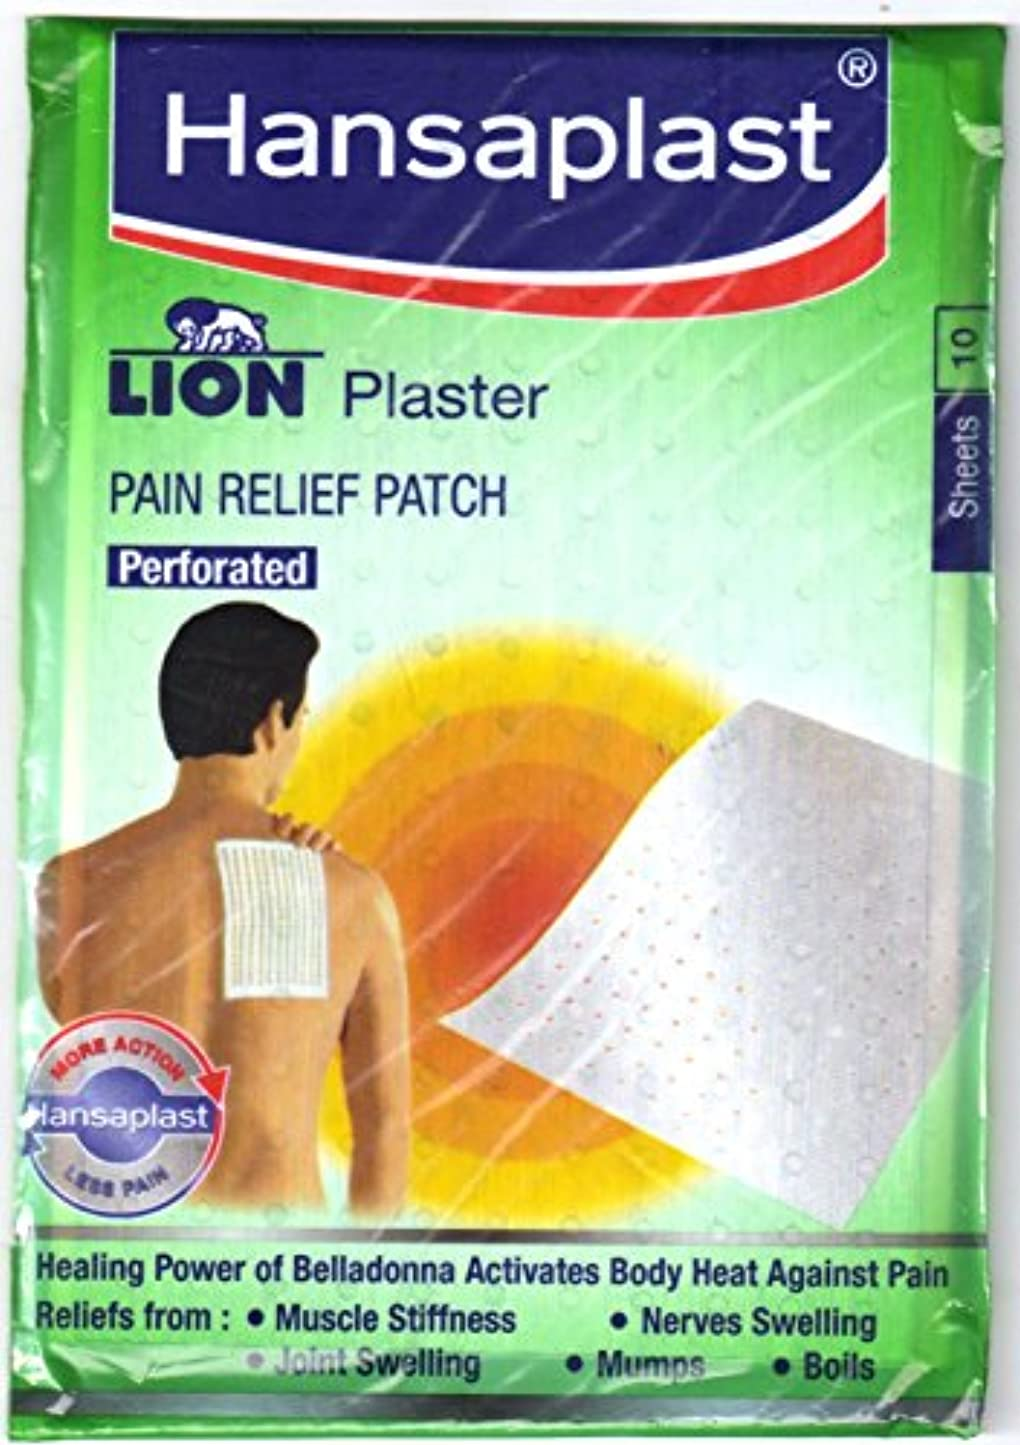 複製知っているに立ち寄る適度なHansaplast Lion plaster (Belladonna) 5 pack of 50 Sheets Pain Relief Patch